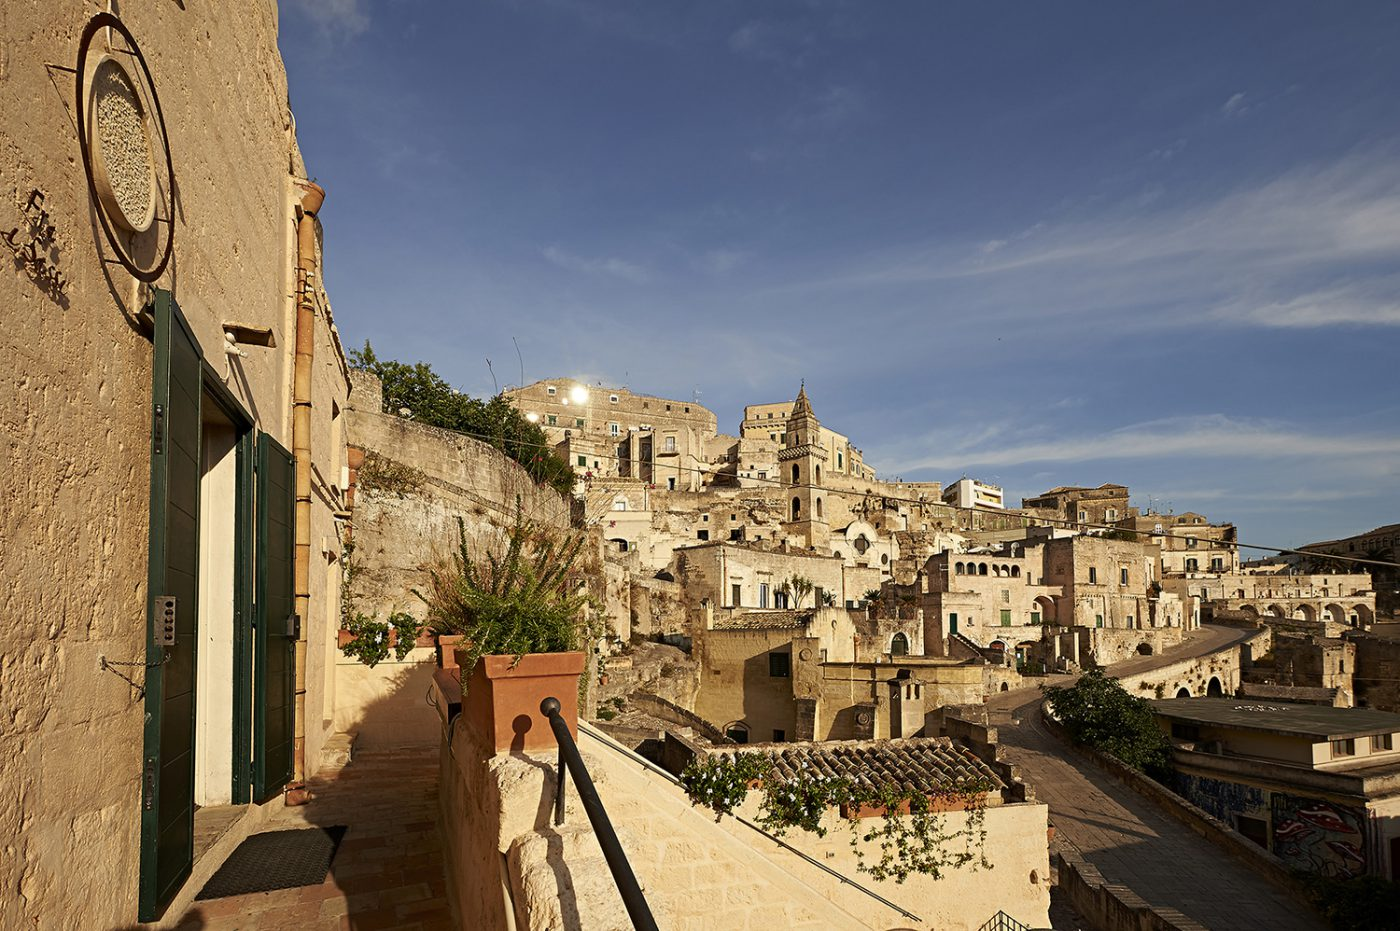 View of the stones of Matera